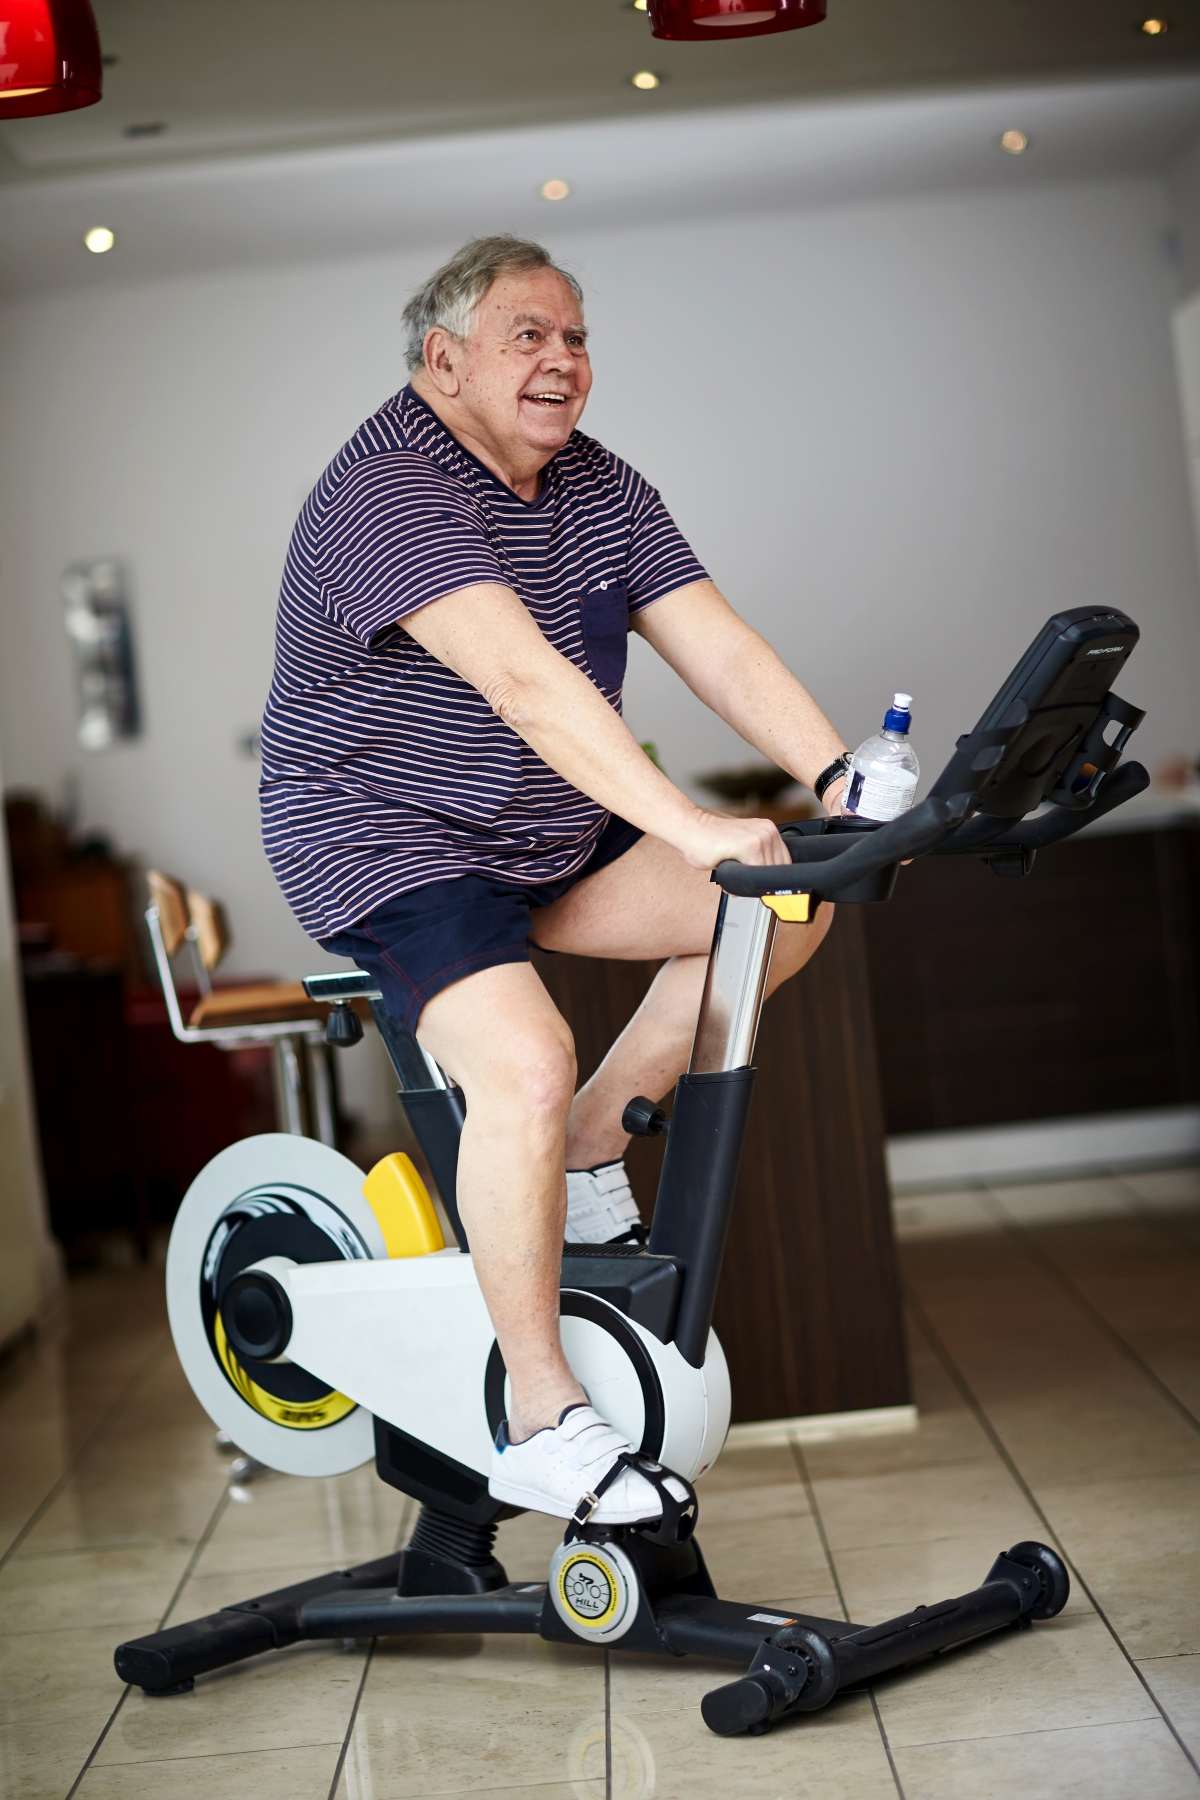 Older man working out on exercise bike